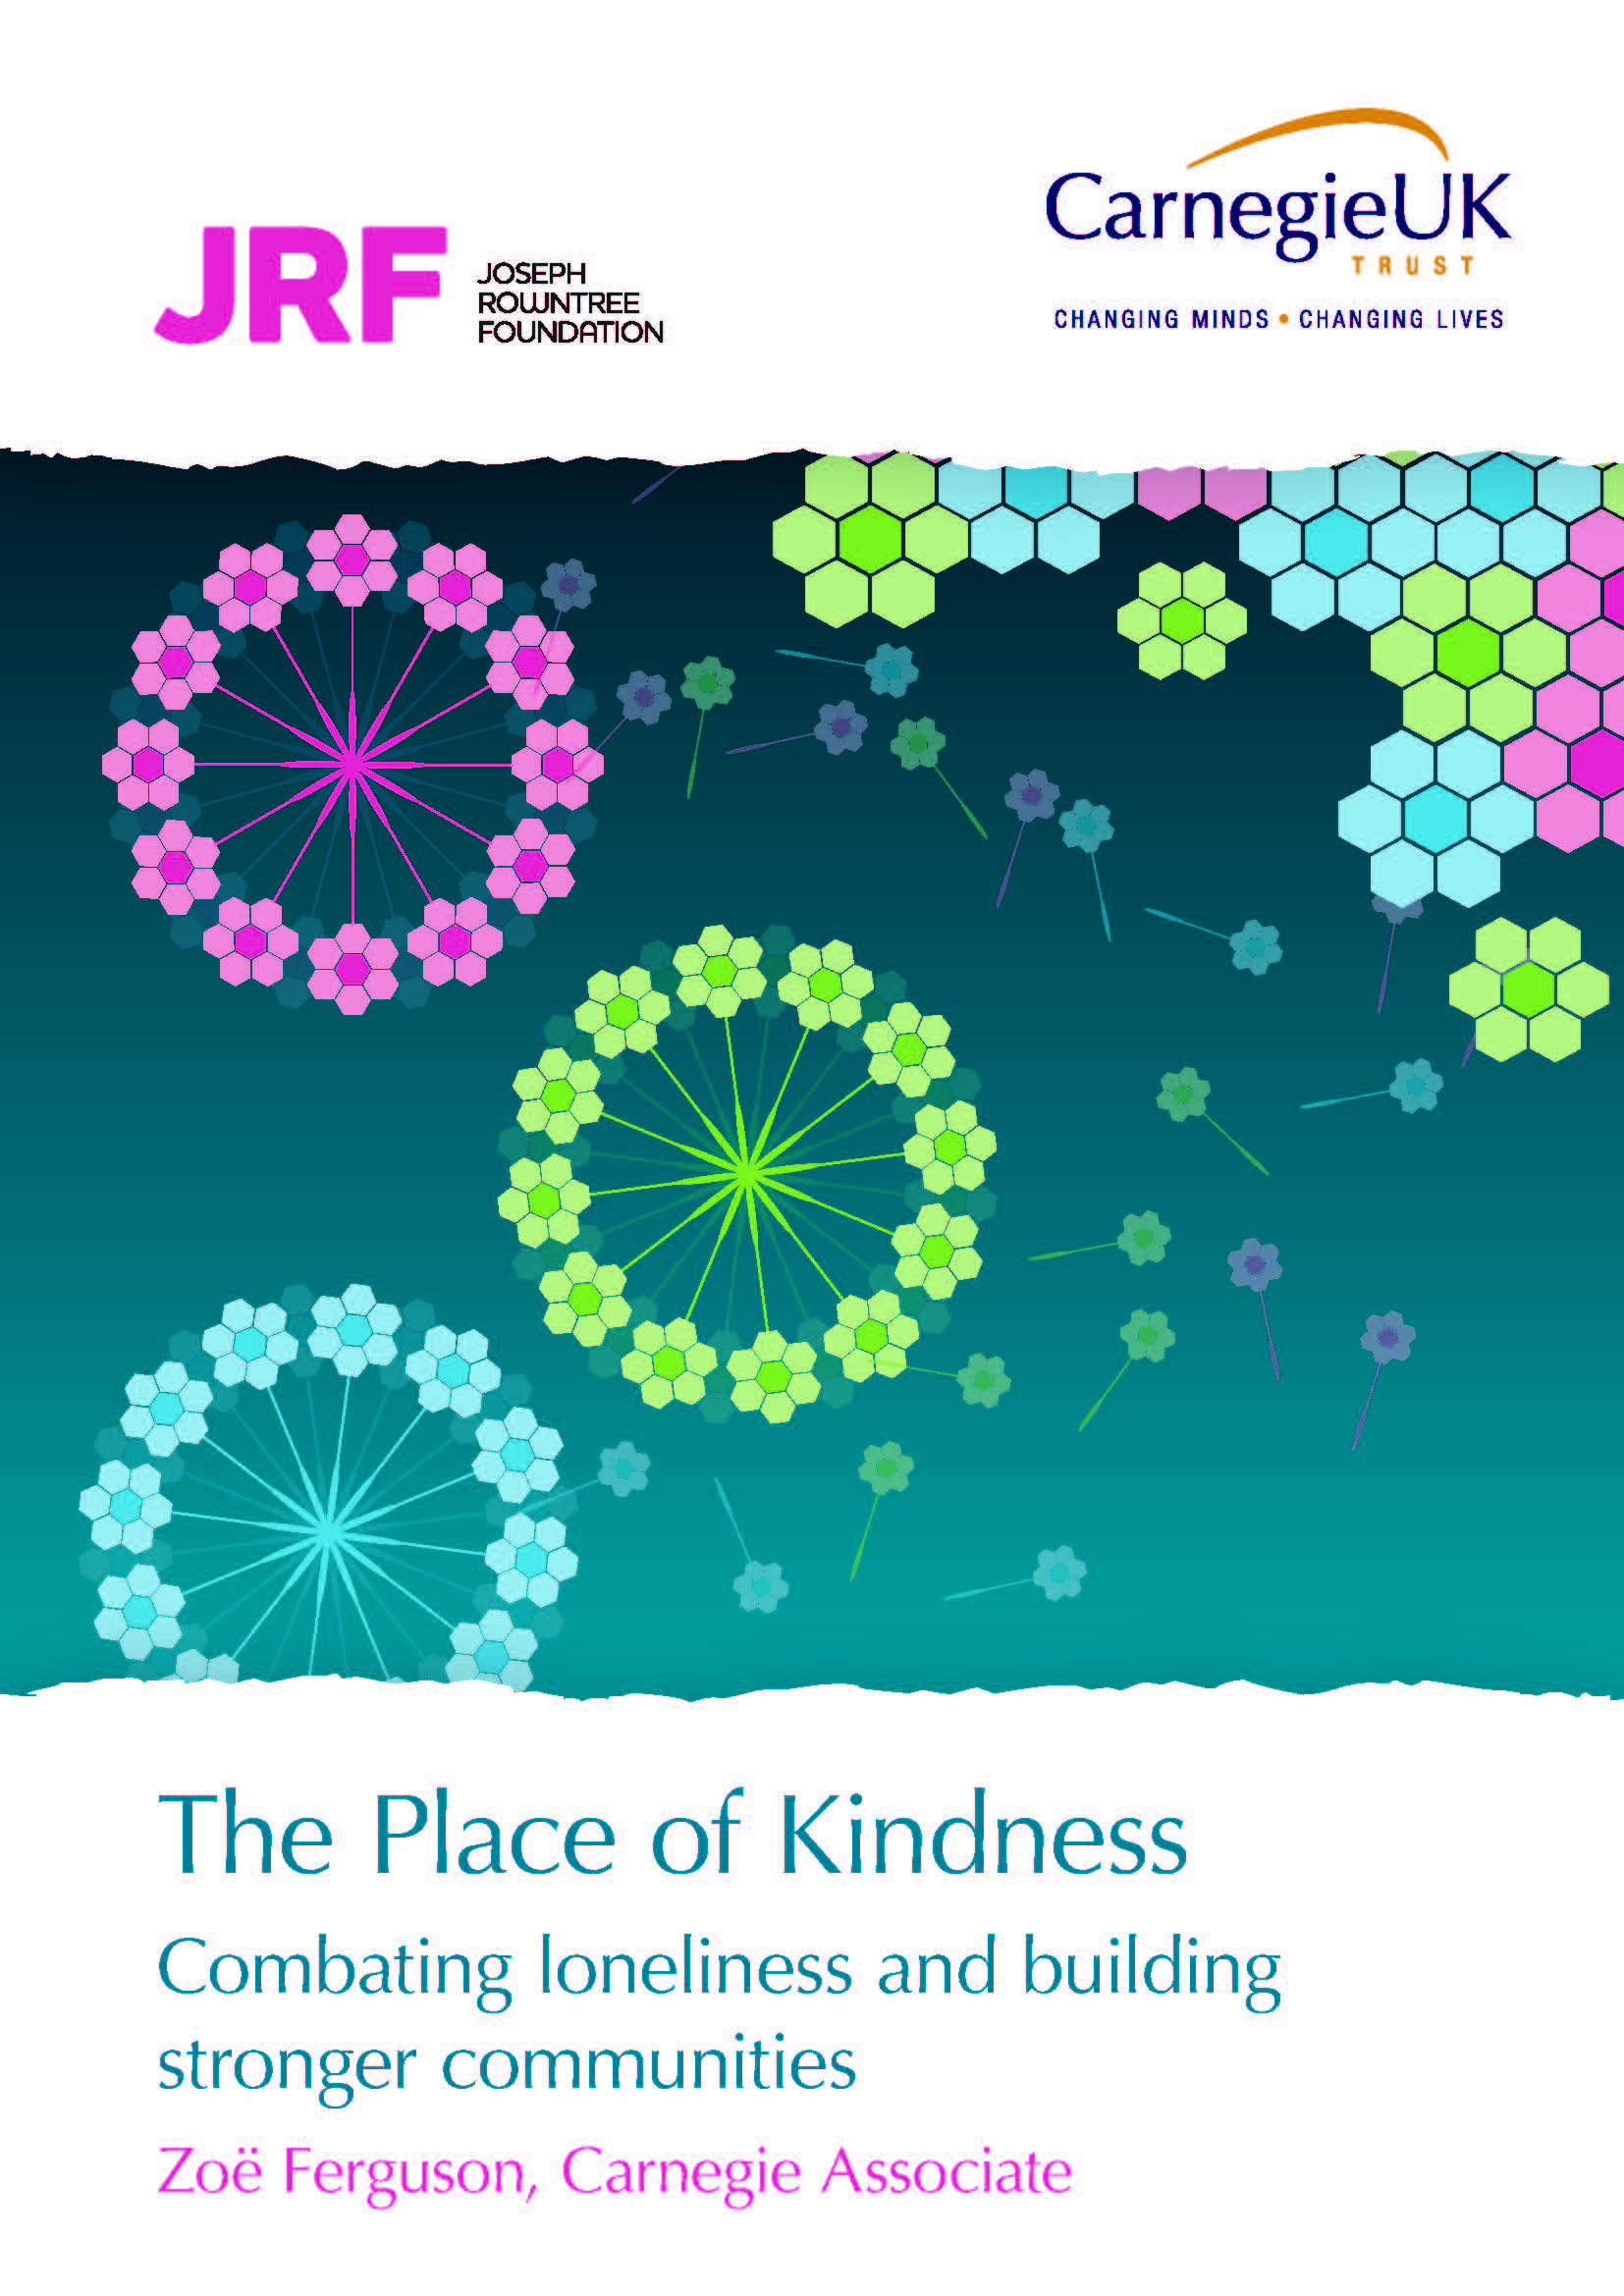 The Place of Kindness: Combating loneliness and building stronger communities